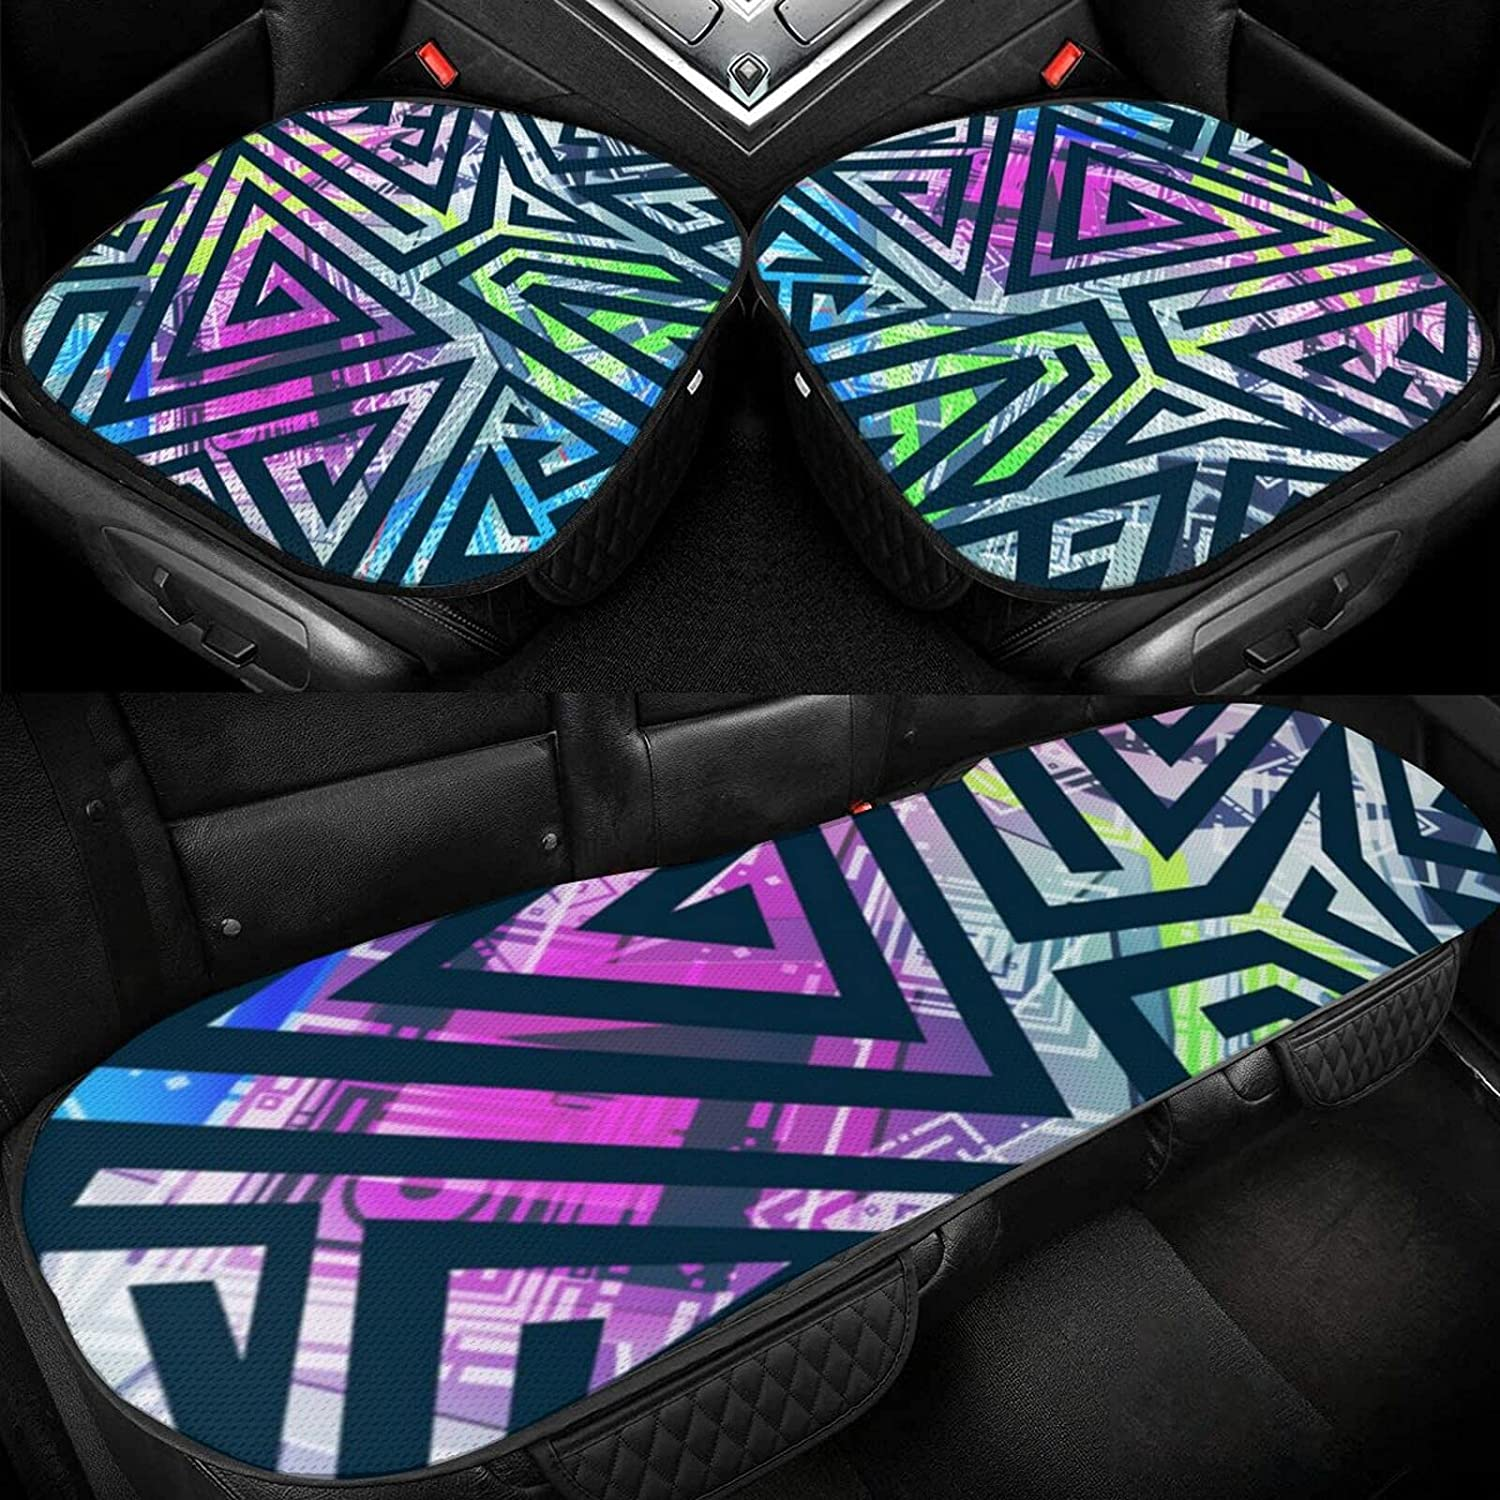 Car Ice Pad Colored Geometric Max 60% OFF Cov New products, world's highest quality popular! Protective Breathable Non-Slip